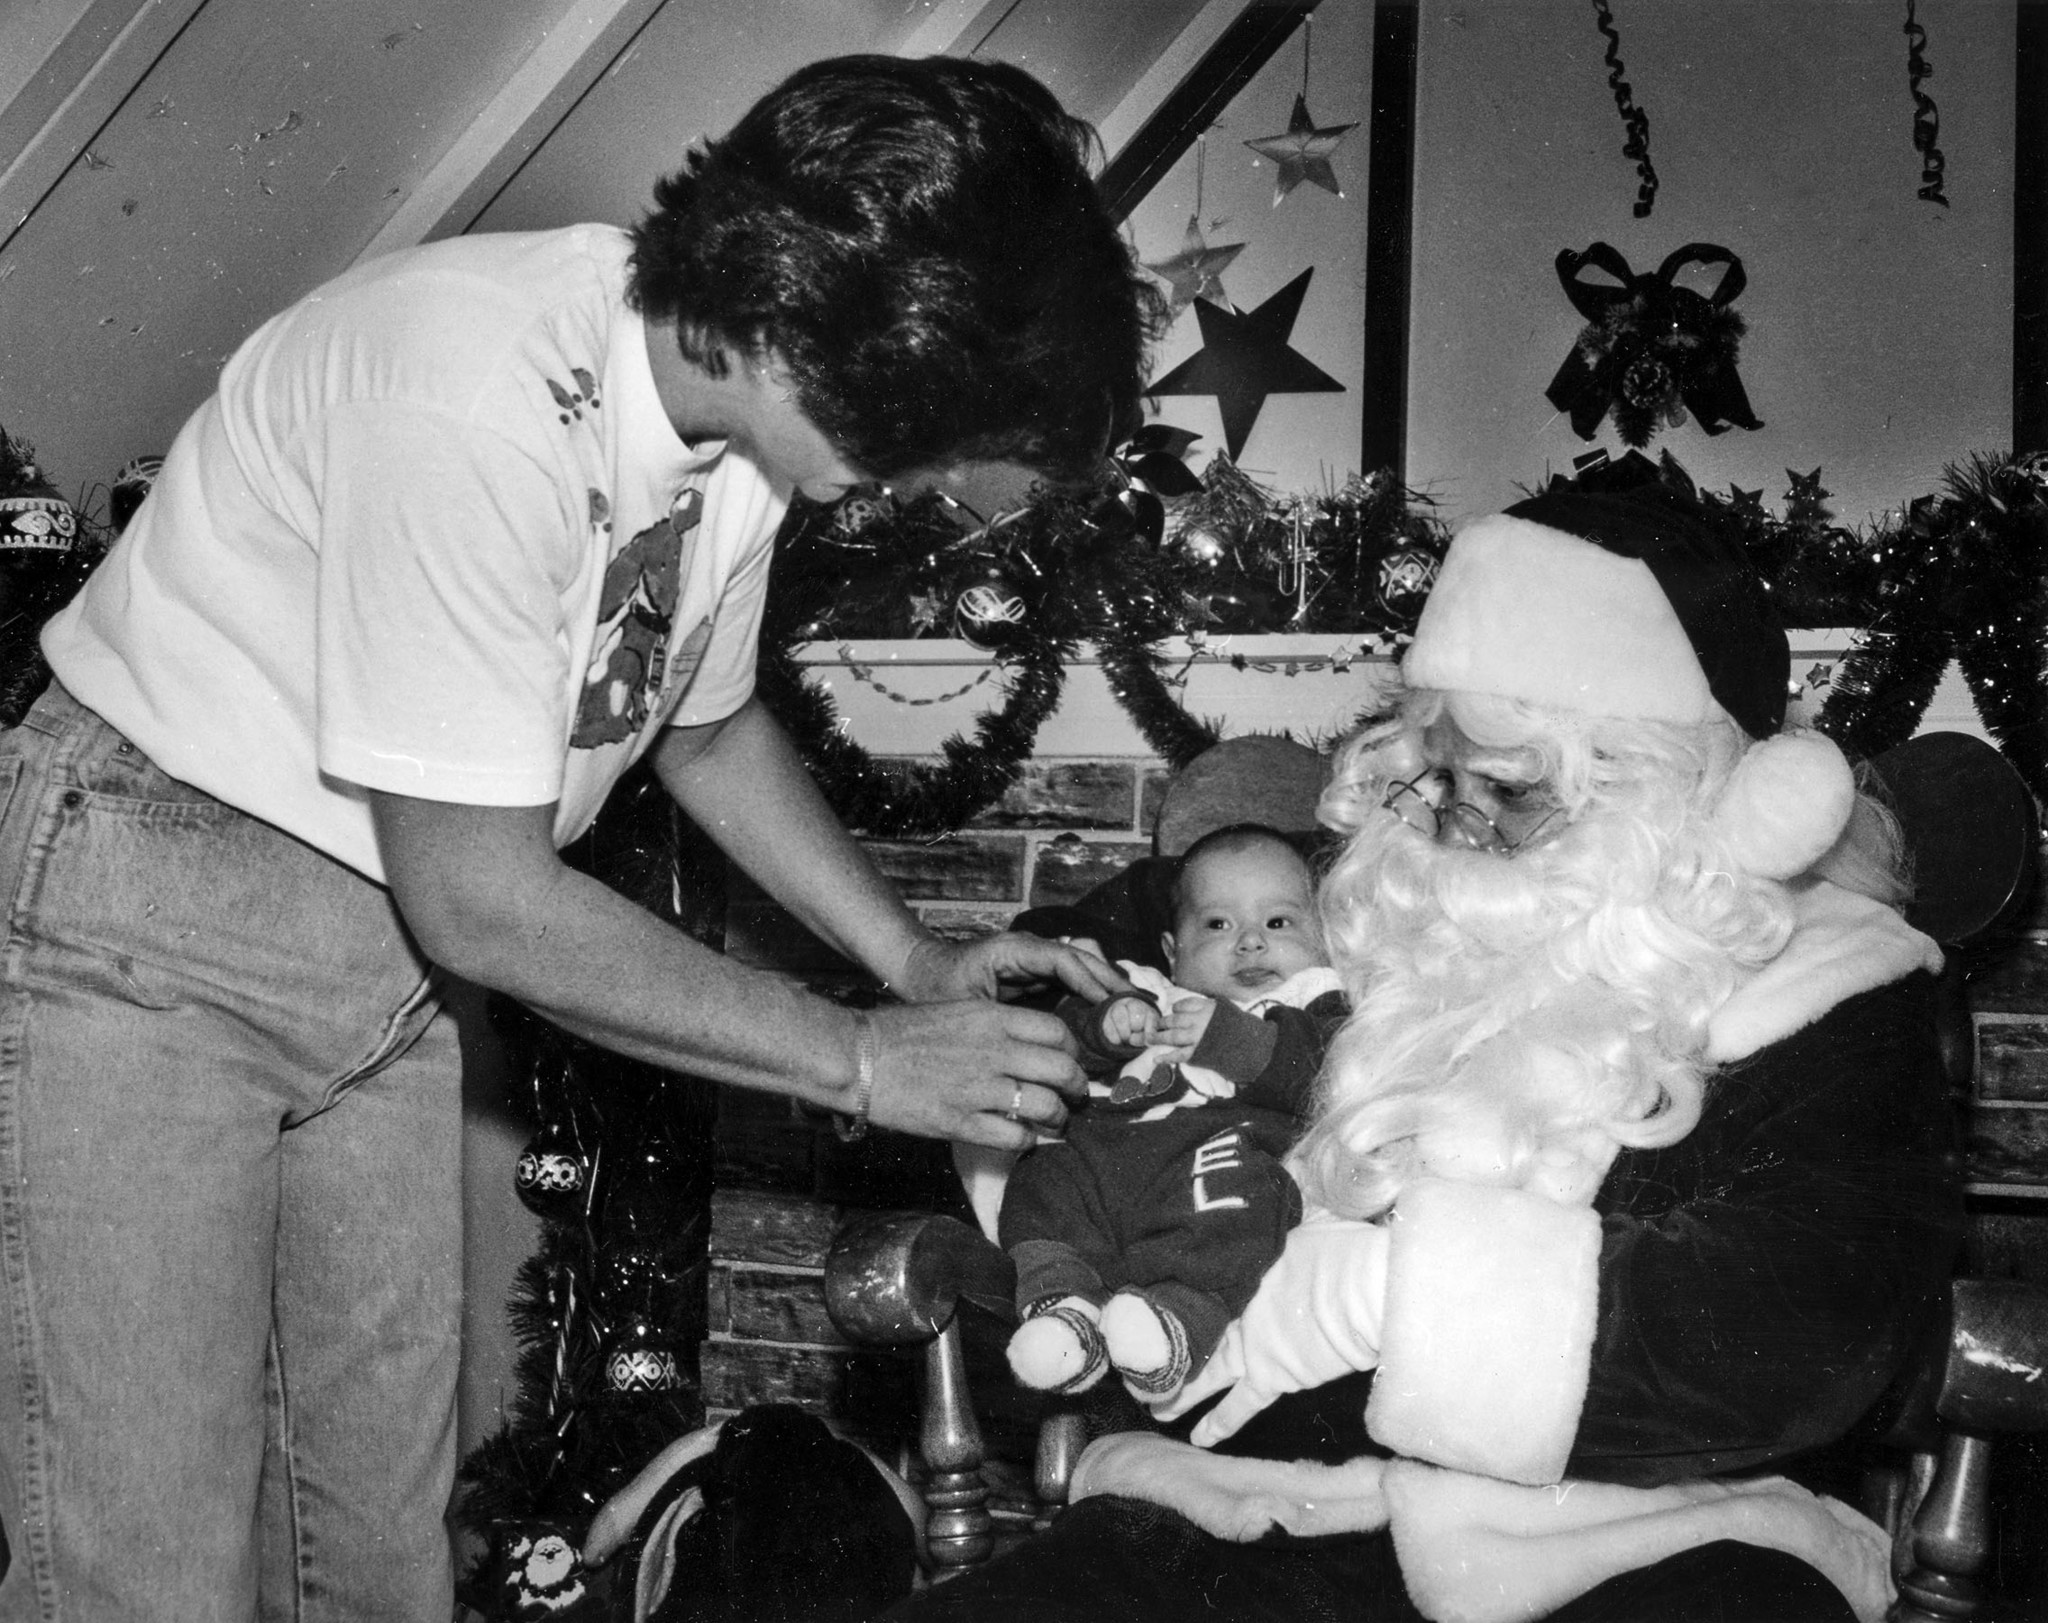 Dec. 8, 1990: Photographer Muriel Wuethrich positions 2-month-old Sergio Maya on Santa's lap before t